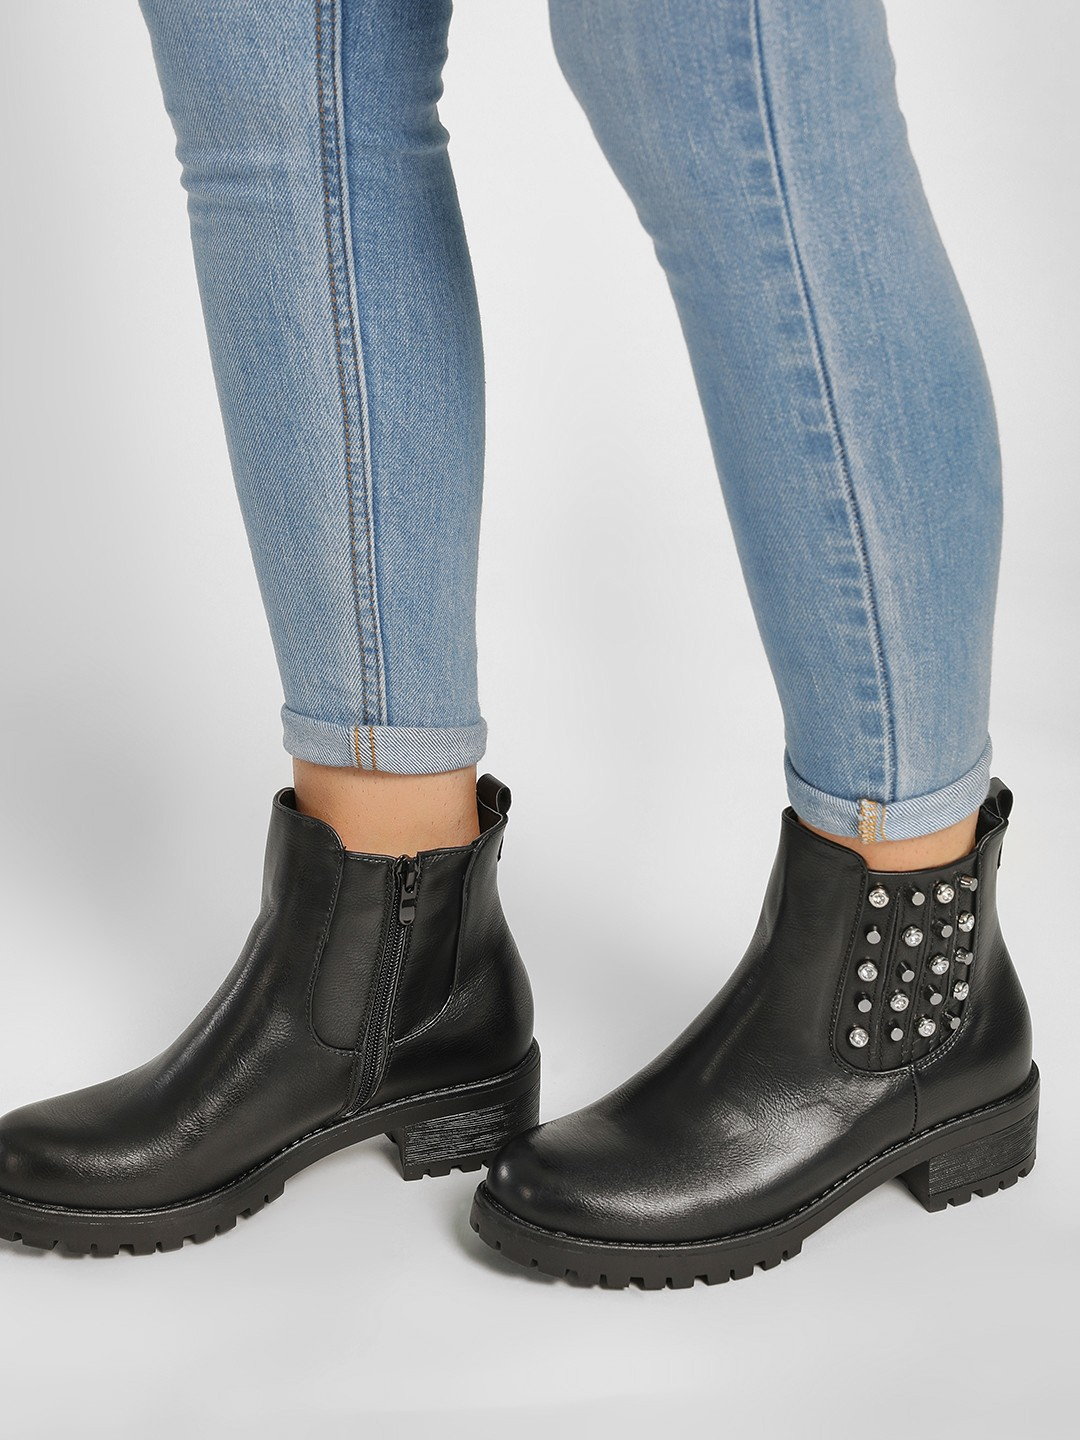 Happy Feet Black Stud & Diamante Embellished Boots 1